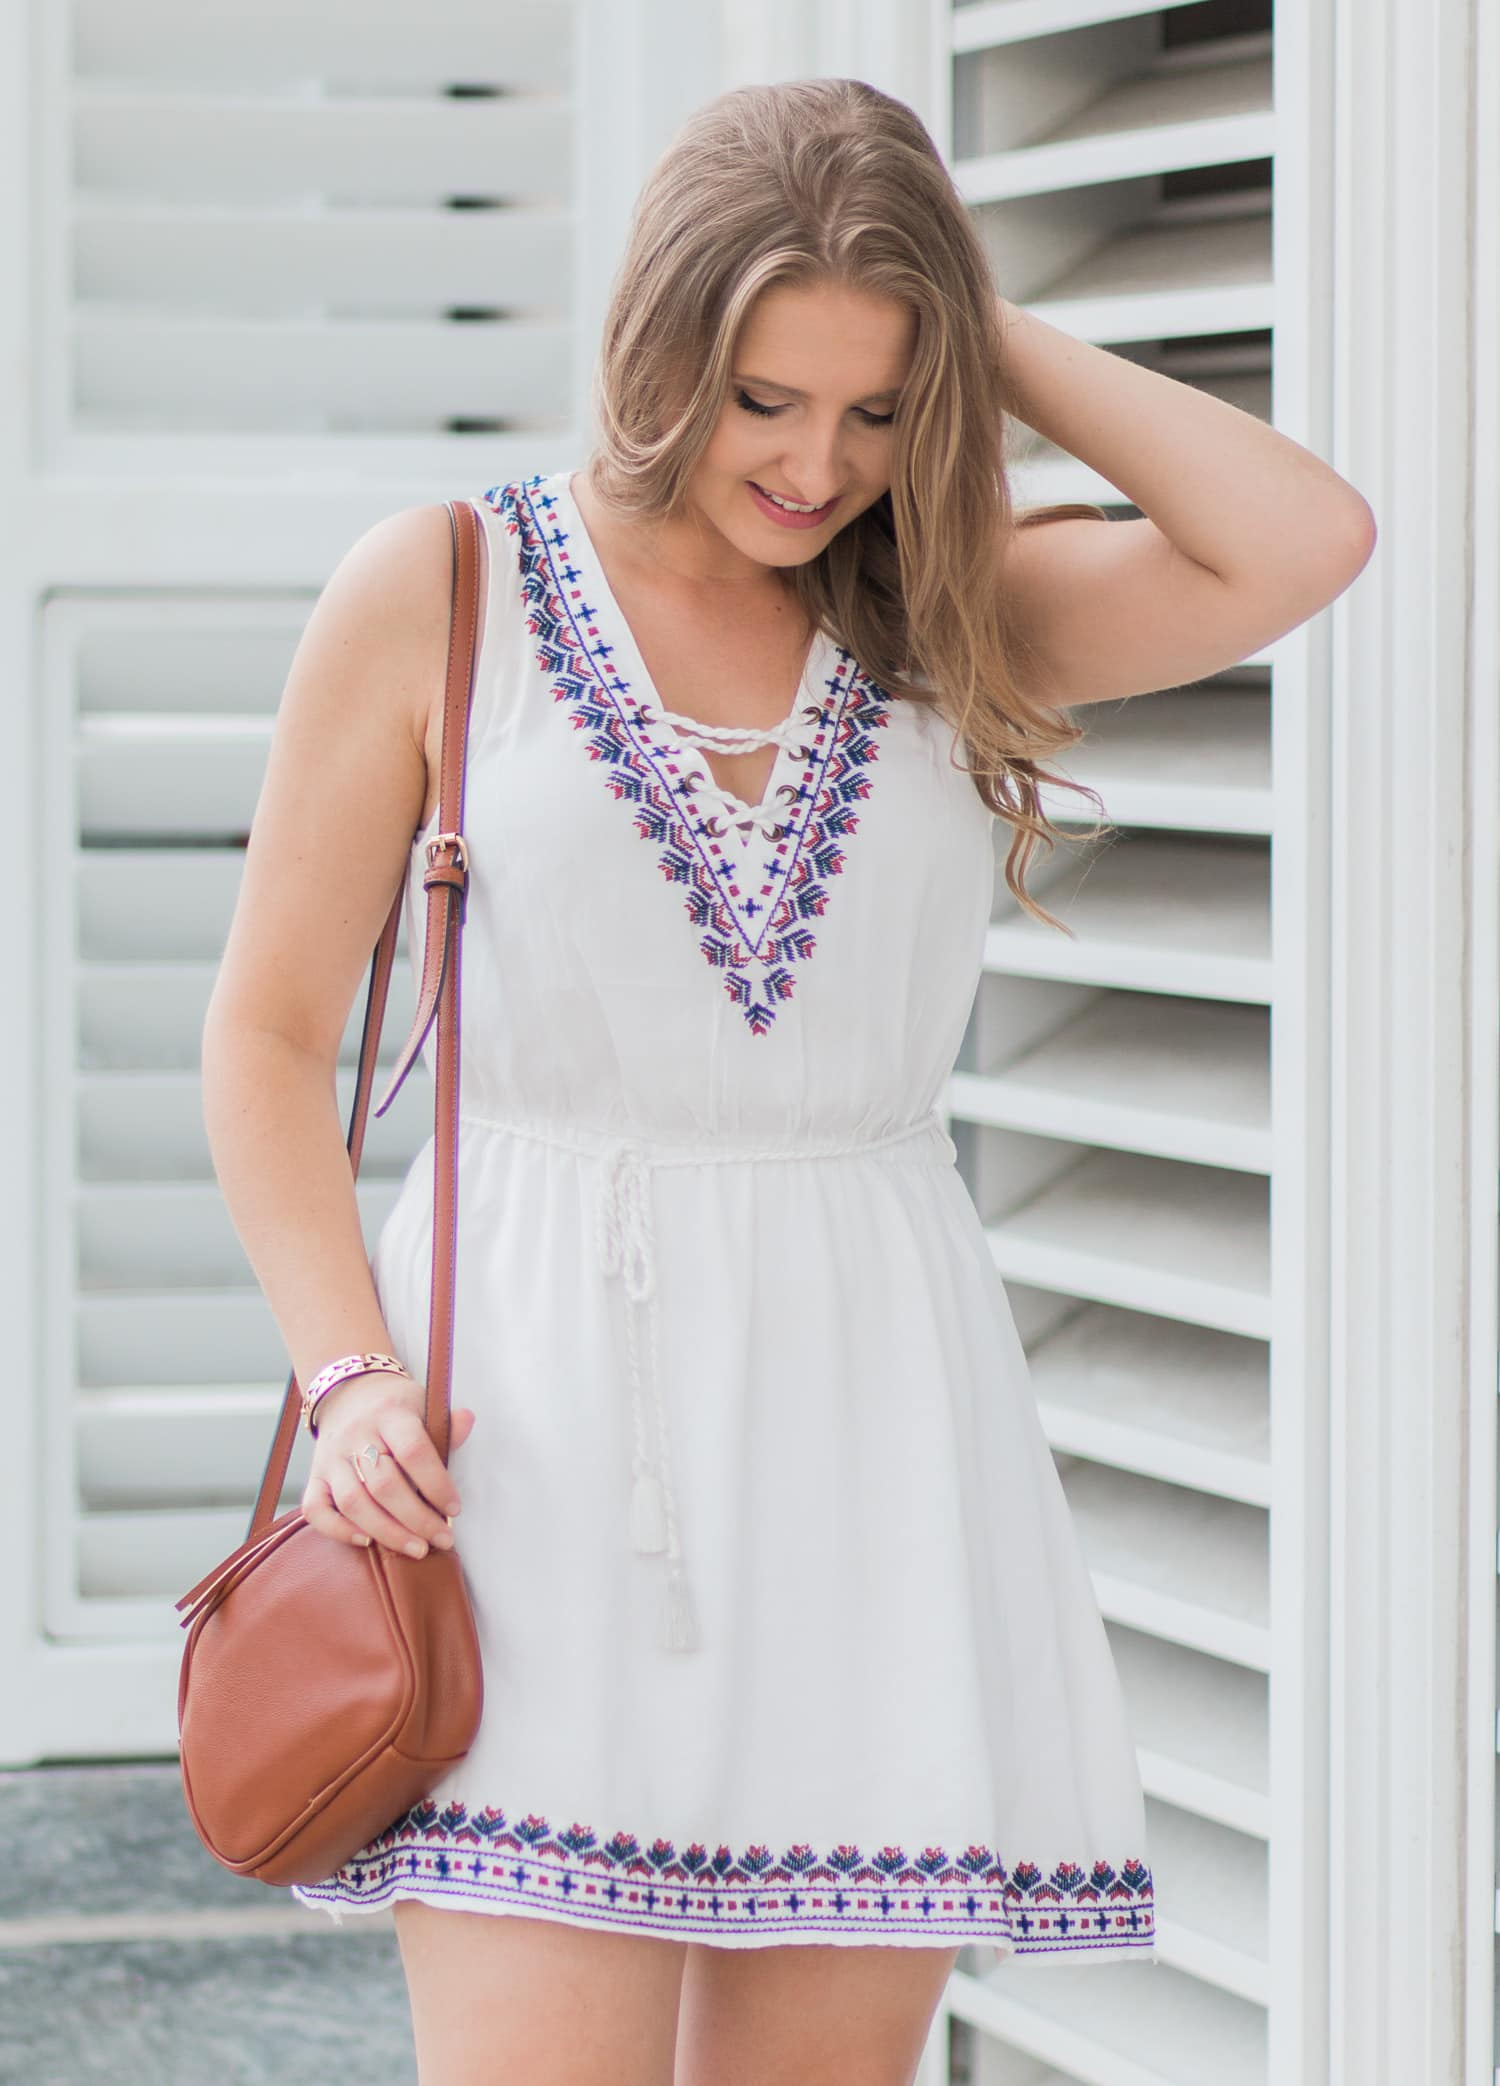 Forever 21 white embroidered lace-up dress outfit idea from blogger Ashley Brooke Nicholas